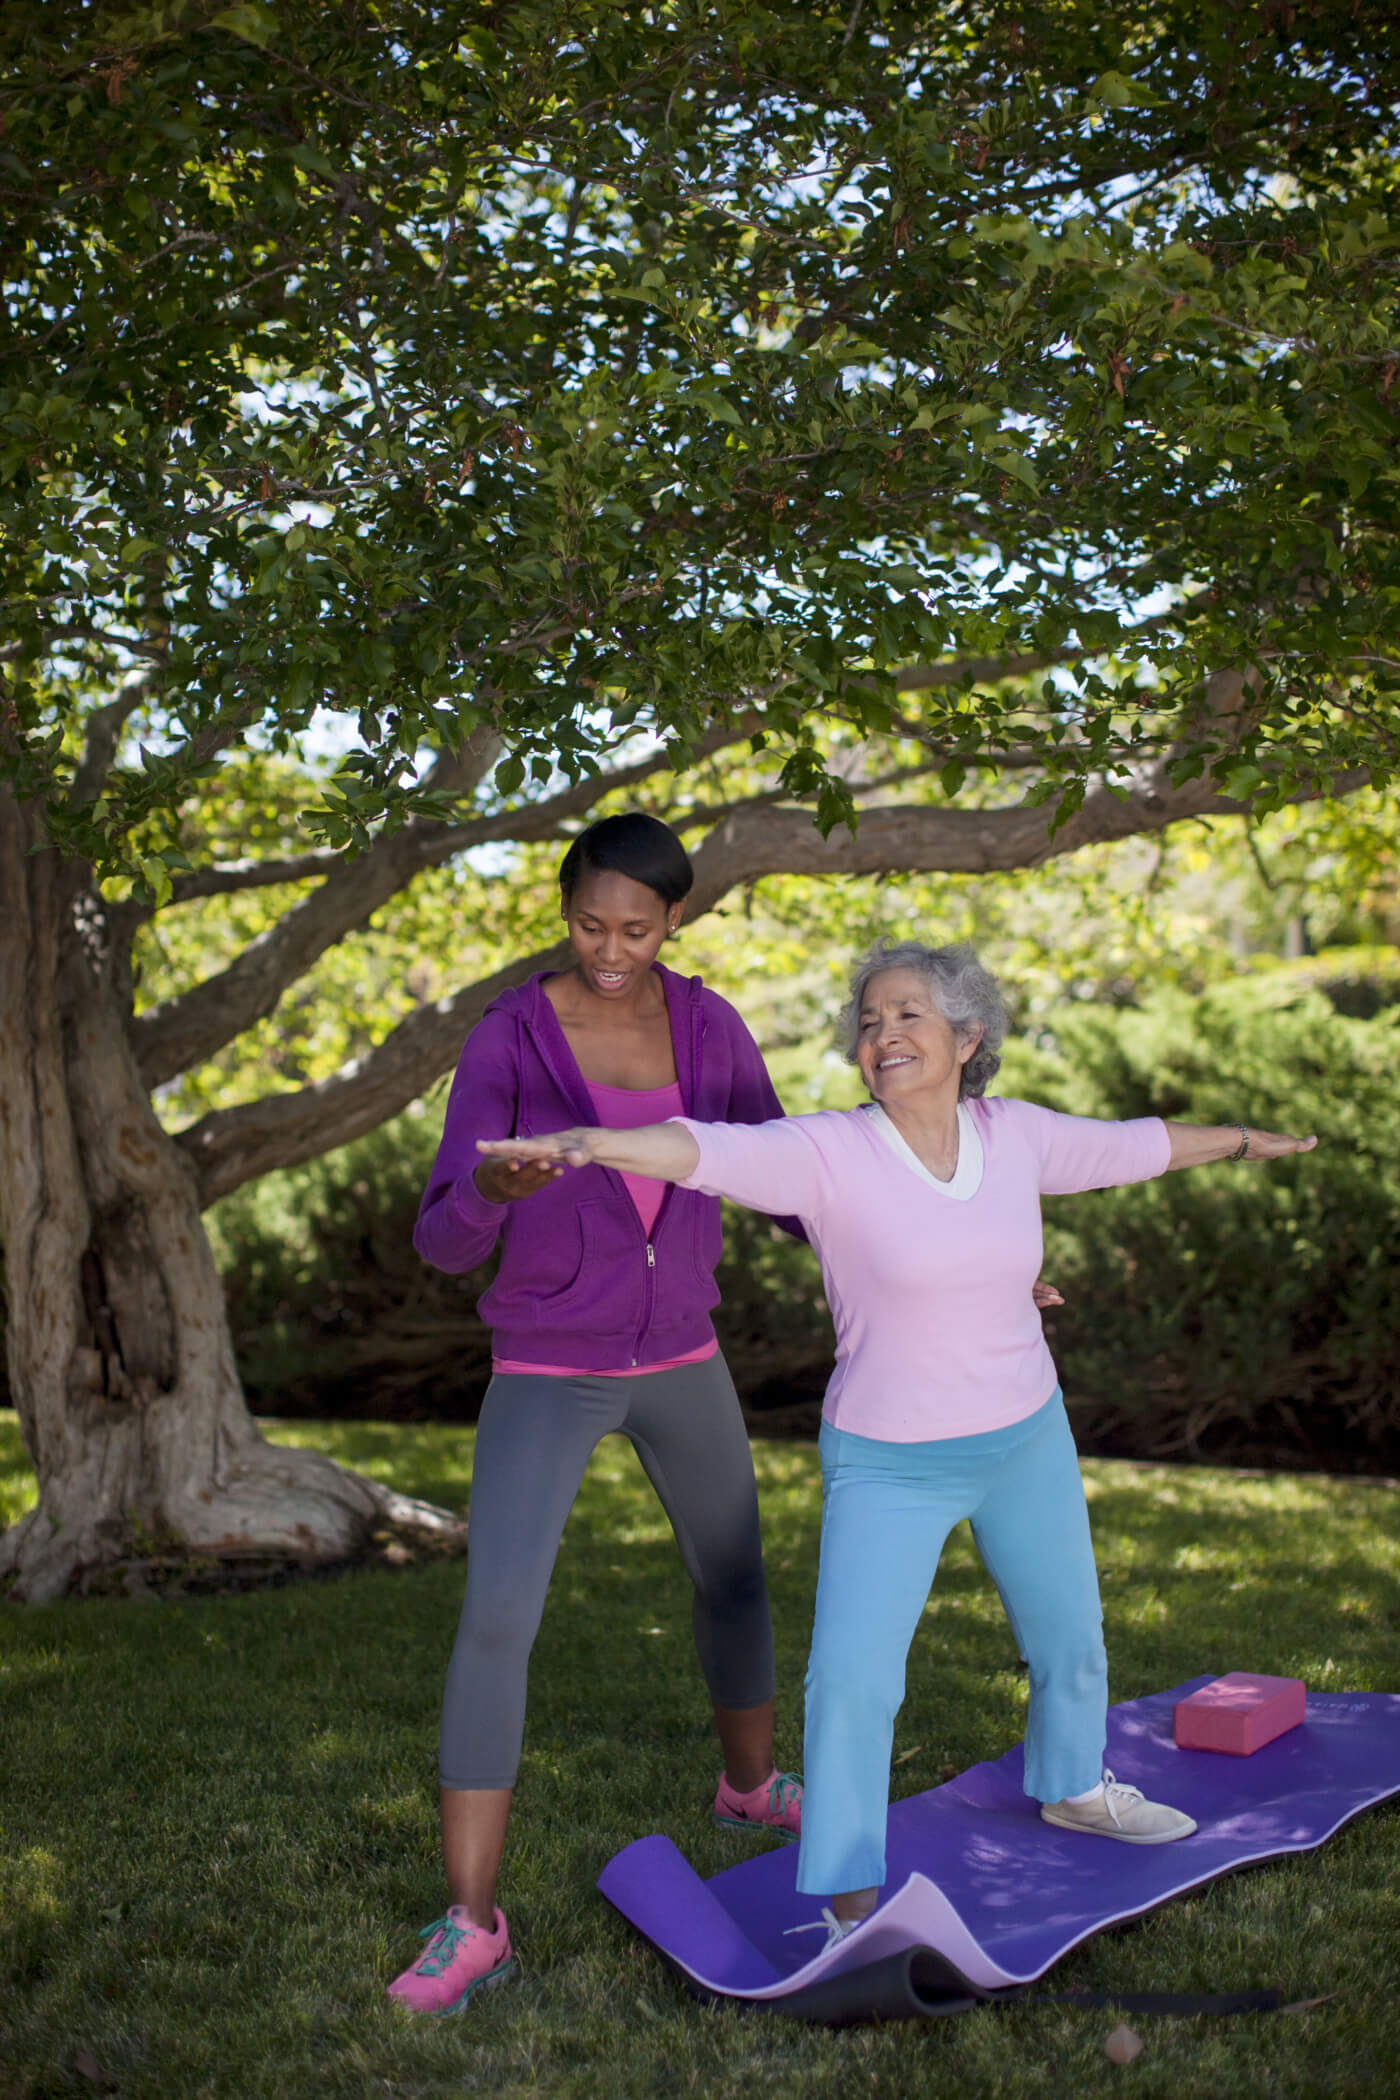 Senior doing Exercise outdoors with caregiver, Home Care Client, Home Care Exercise